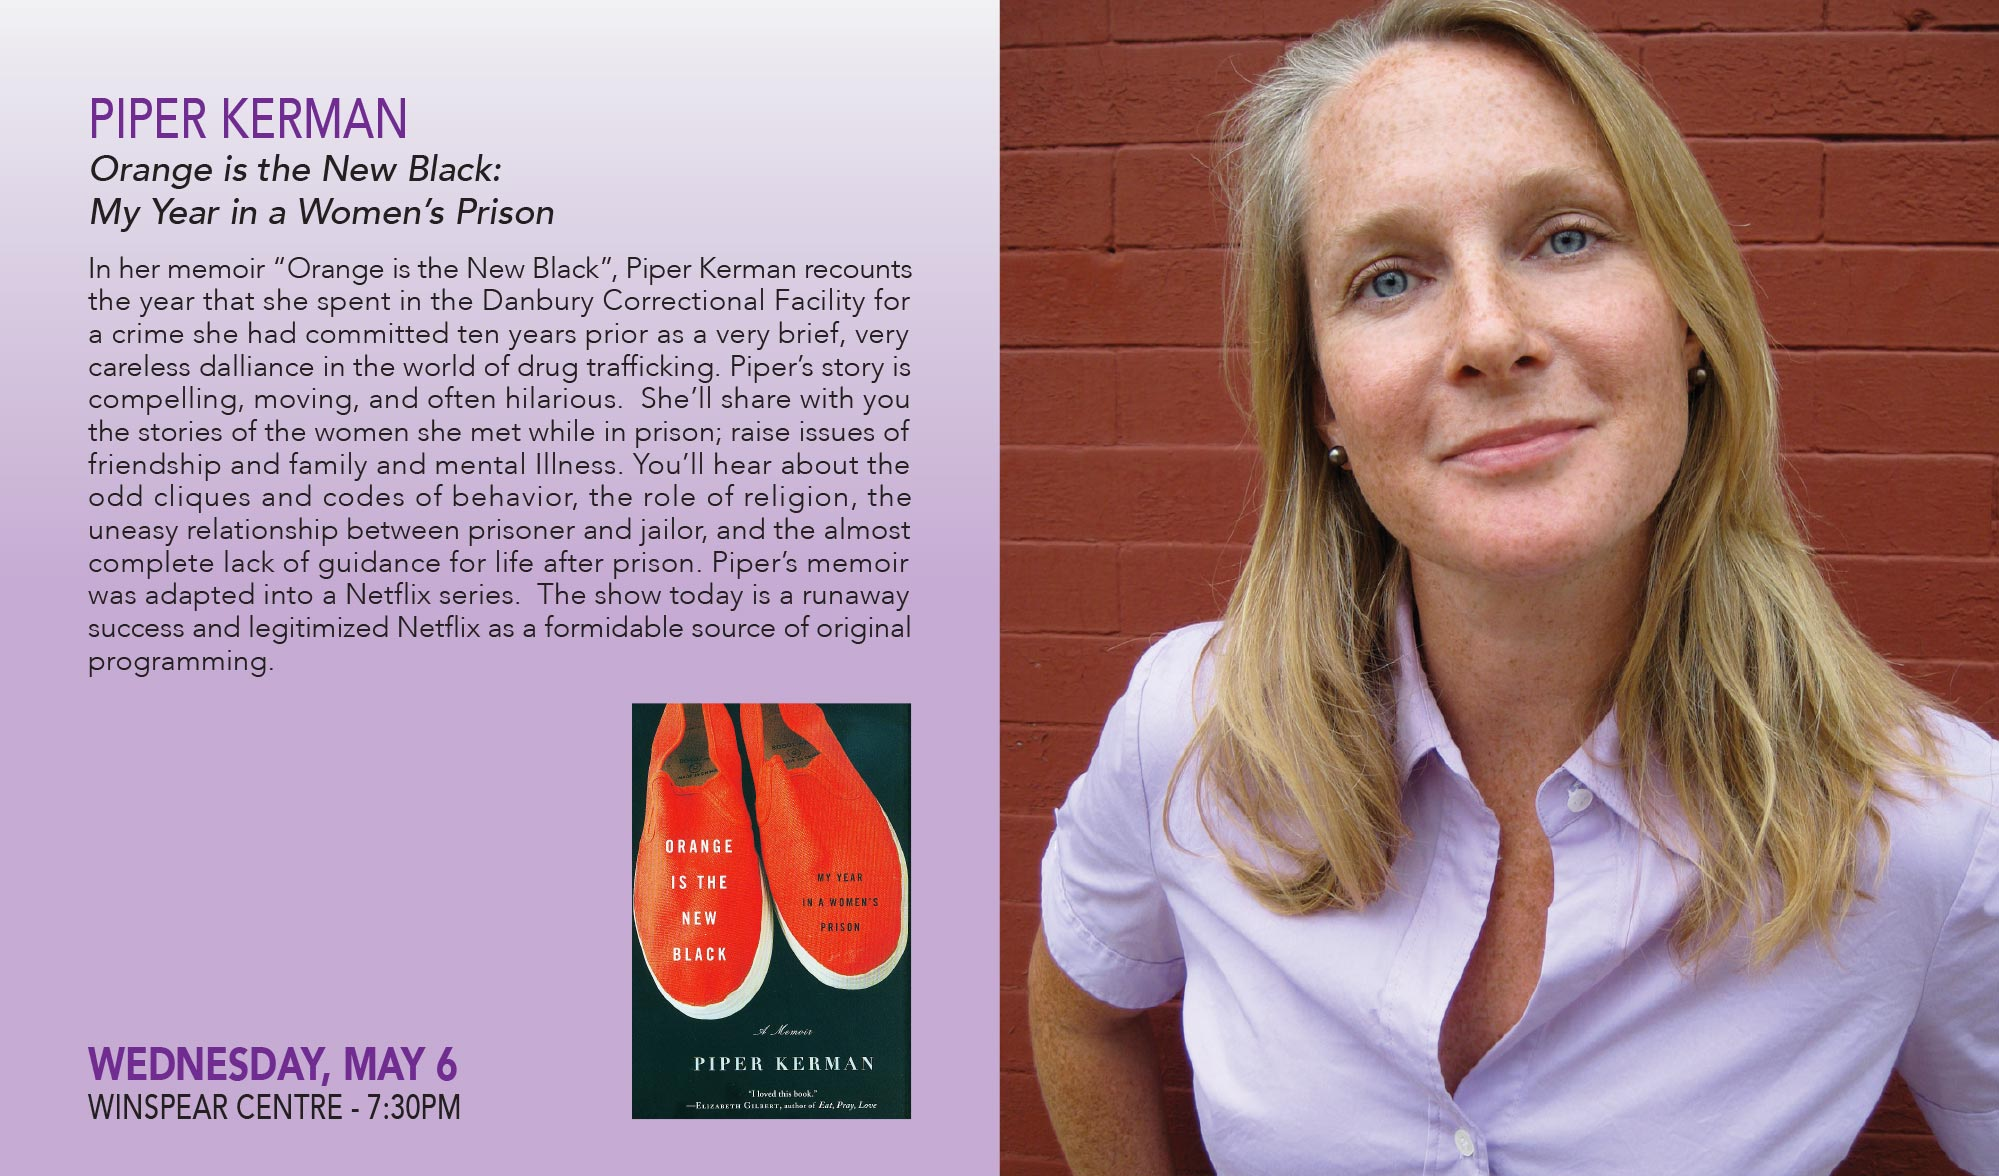 piper kerman biography